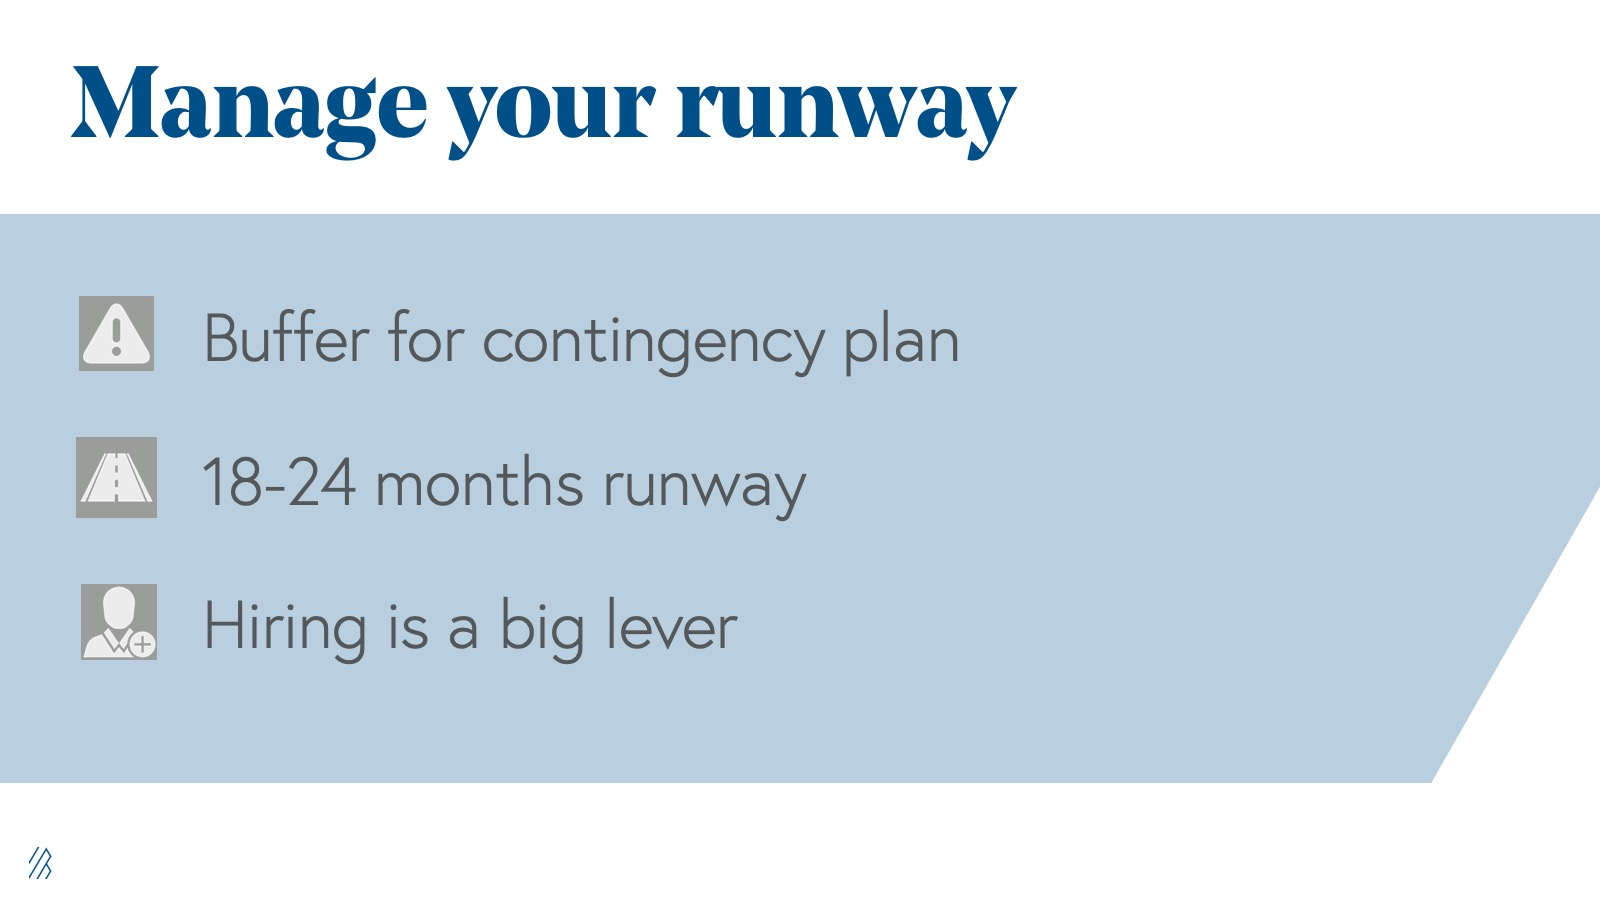 How to manage your runway.